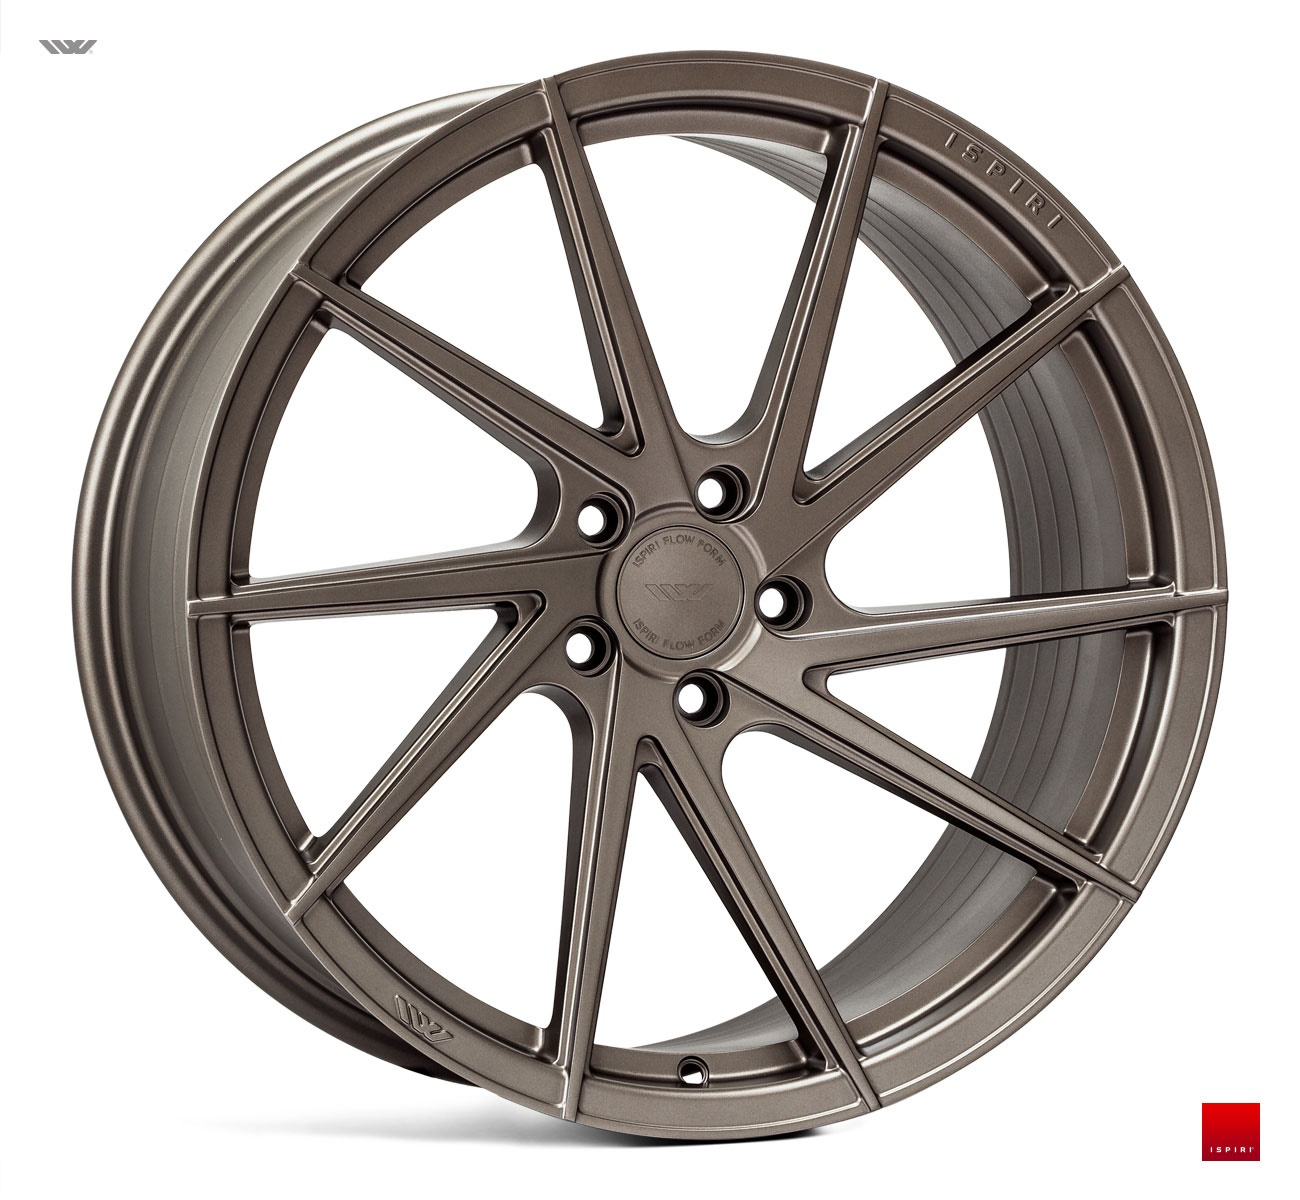 "NEW 20"" ISPIRI FFR1D DIRECTIONAL MULTI-SPOKE ALLOY WHEELS IN MATT CARBON BRONZE, DEEPER CONCAVE 10"" OR 10.5"" REARS - VARIOUS FITMENTS AVAILABLE"